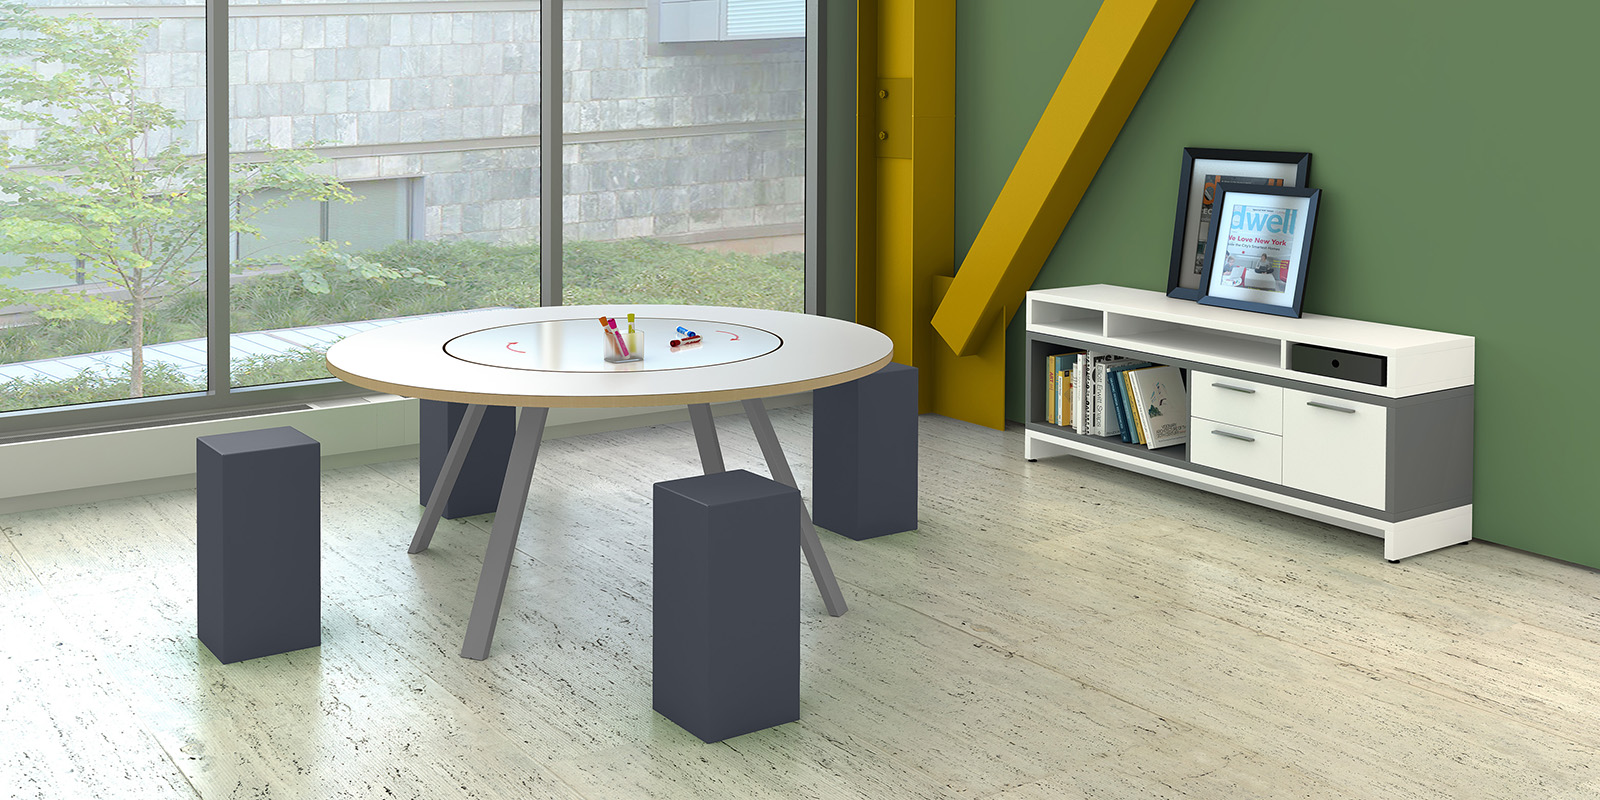 Office Furniture Round Table - Small round meeting table and chairs